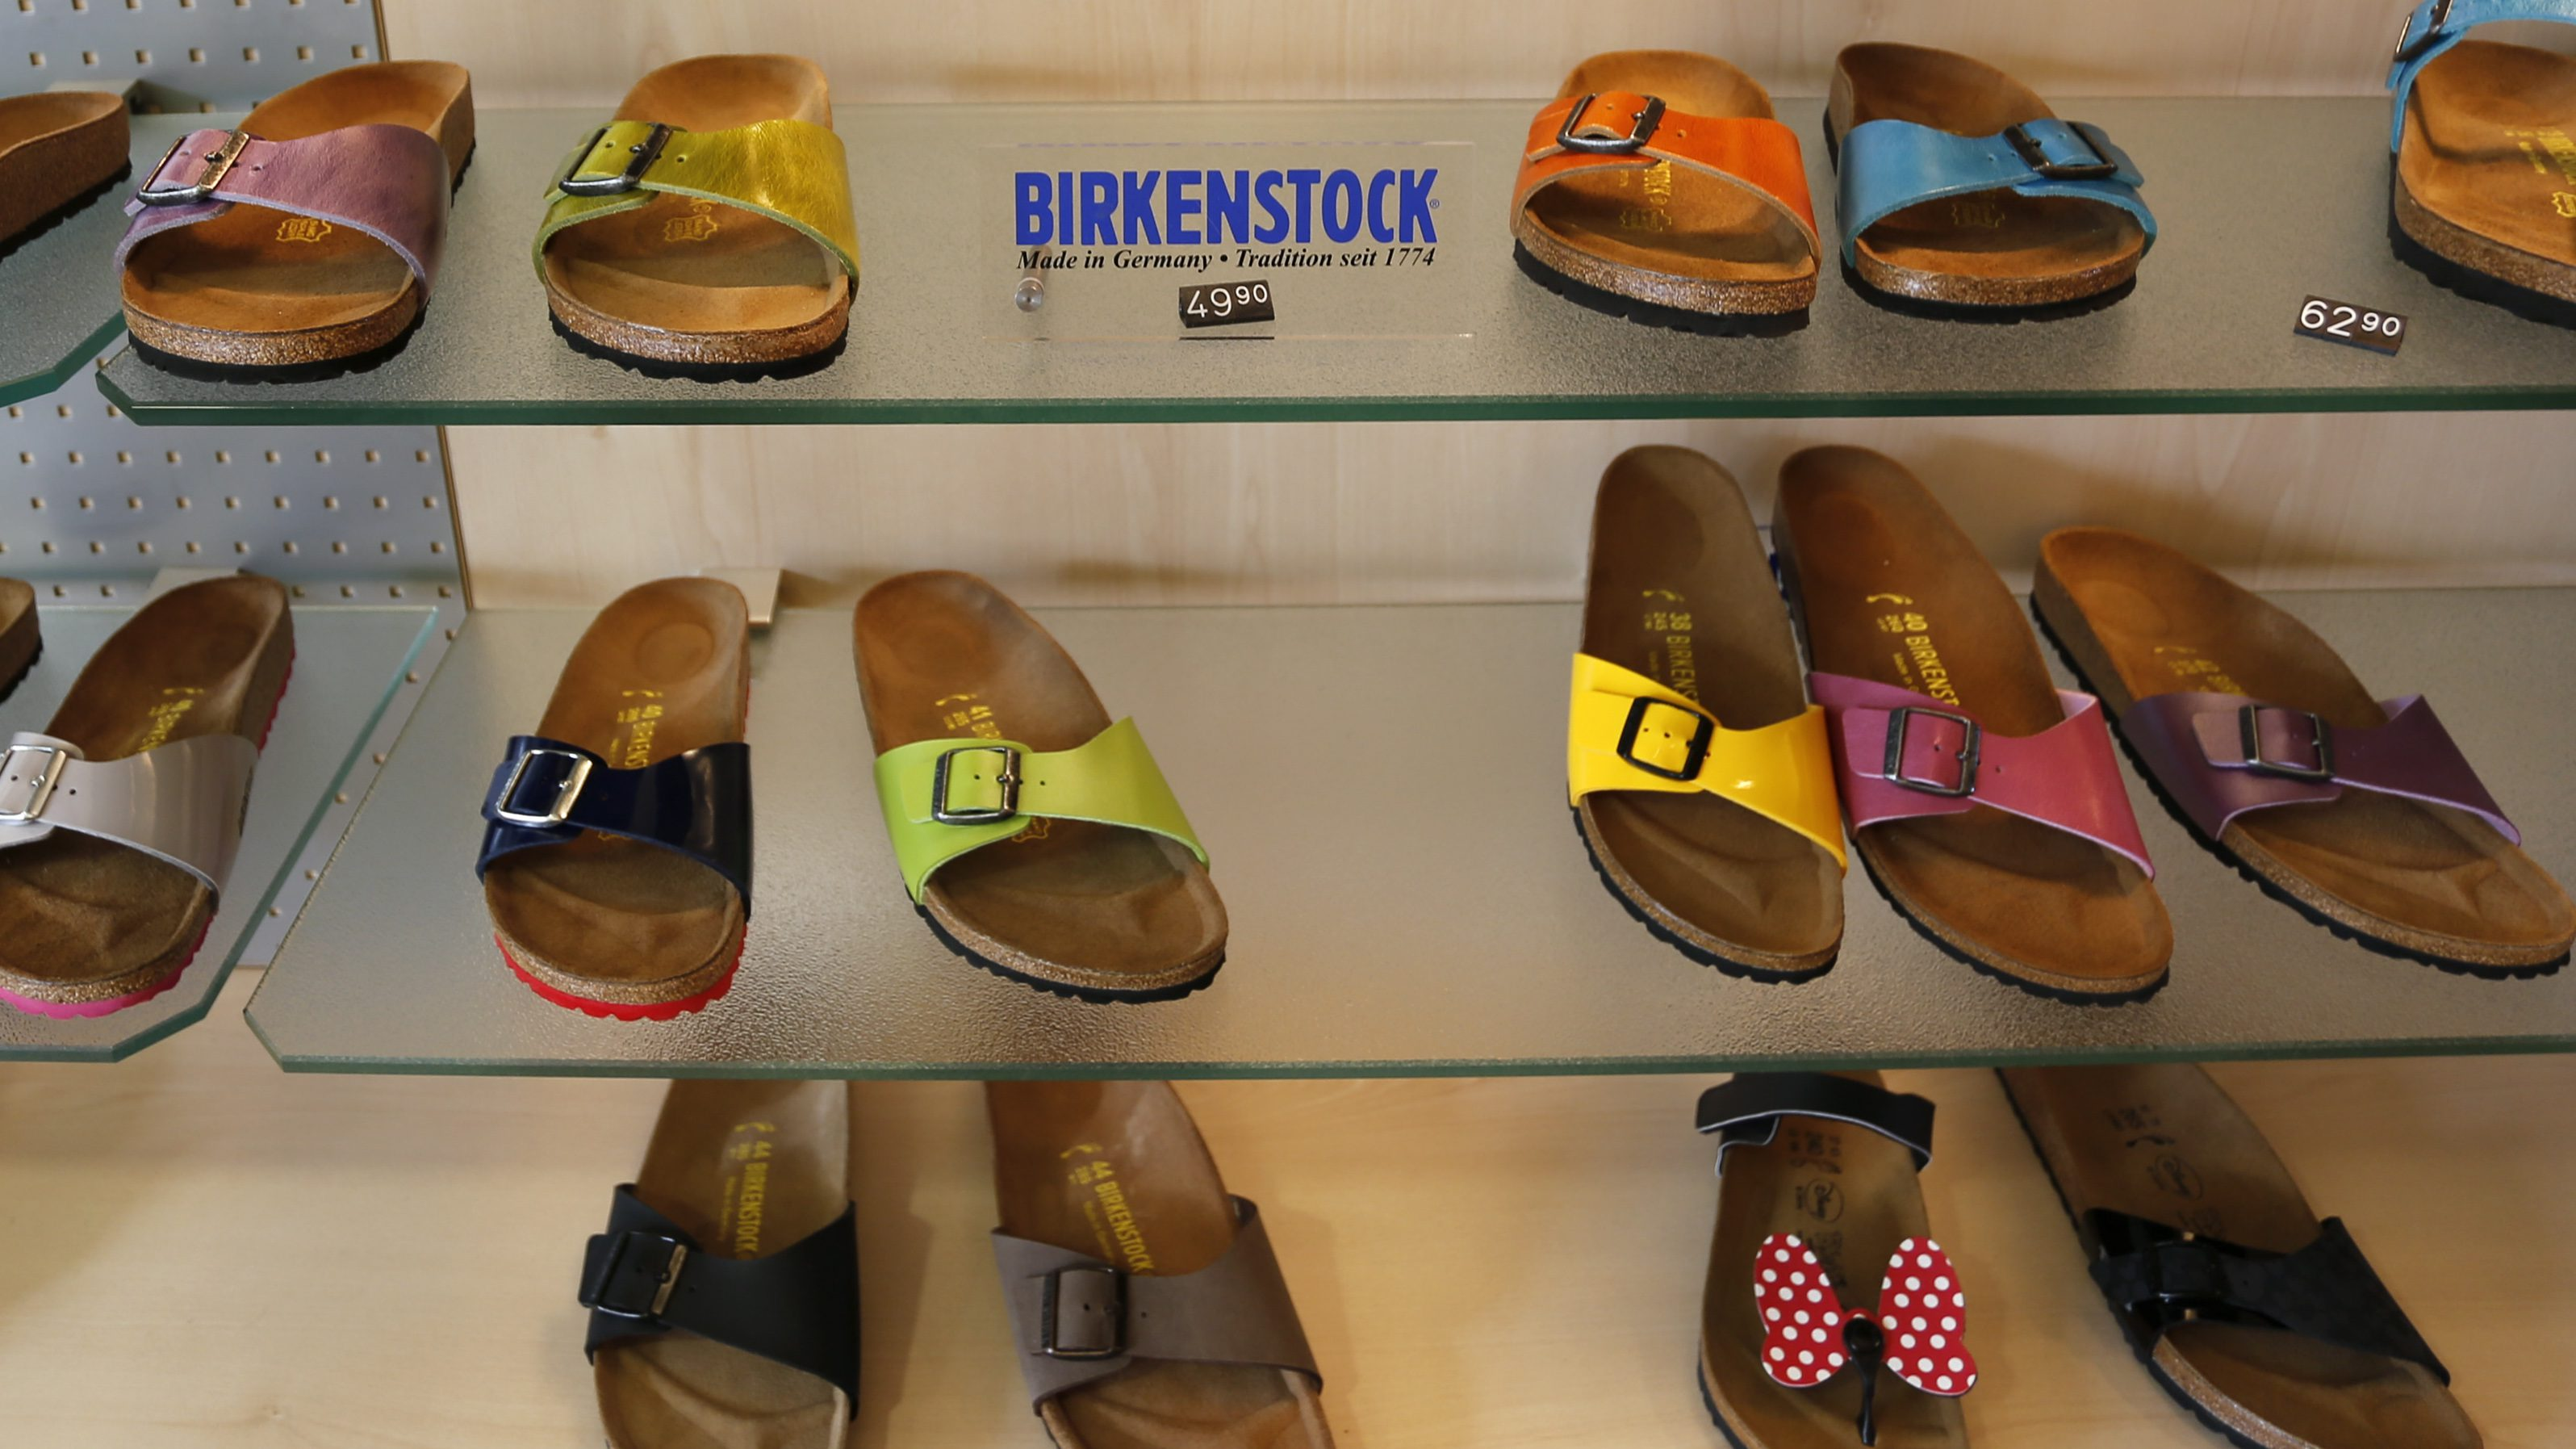 A Birkenstock shoe shop is pictured in Dortmund August 27, 2013. REUTERS/Ina Fassbender (GERMANY - Tags: SOCIETY) - BM2E98R0XGH01